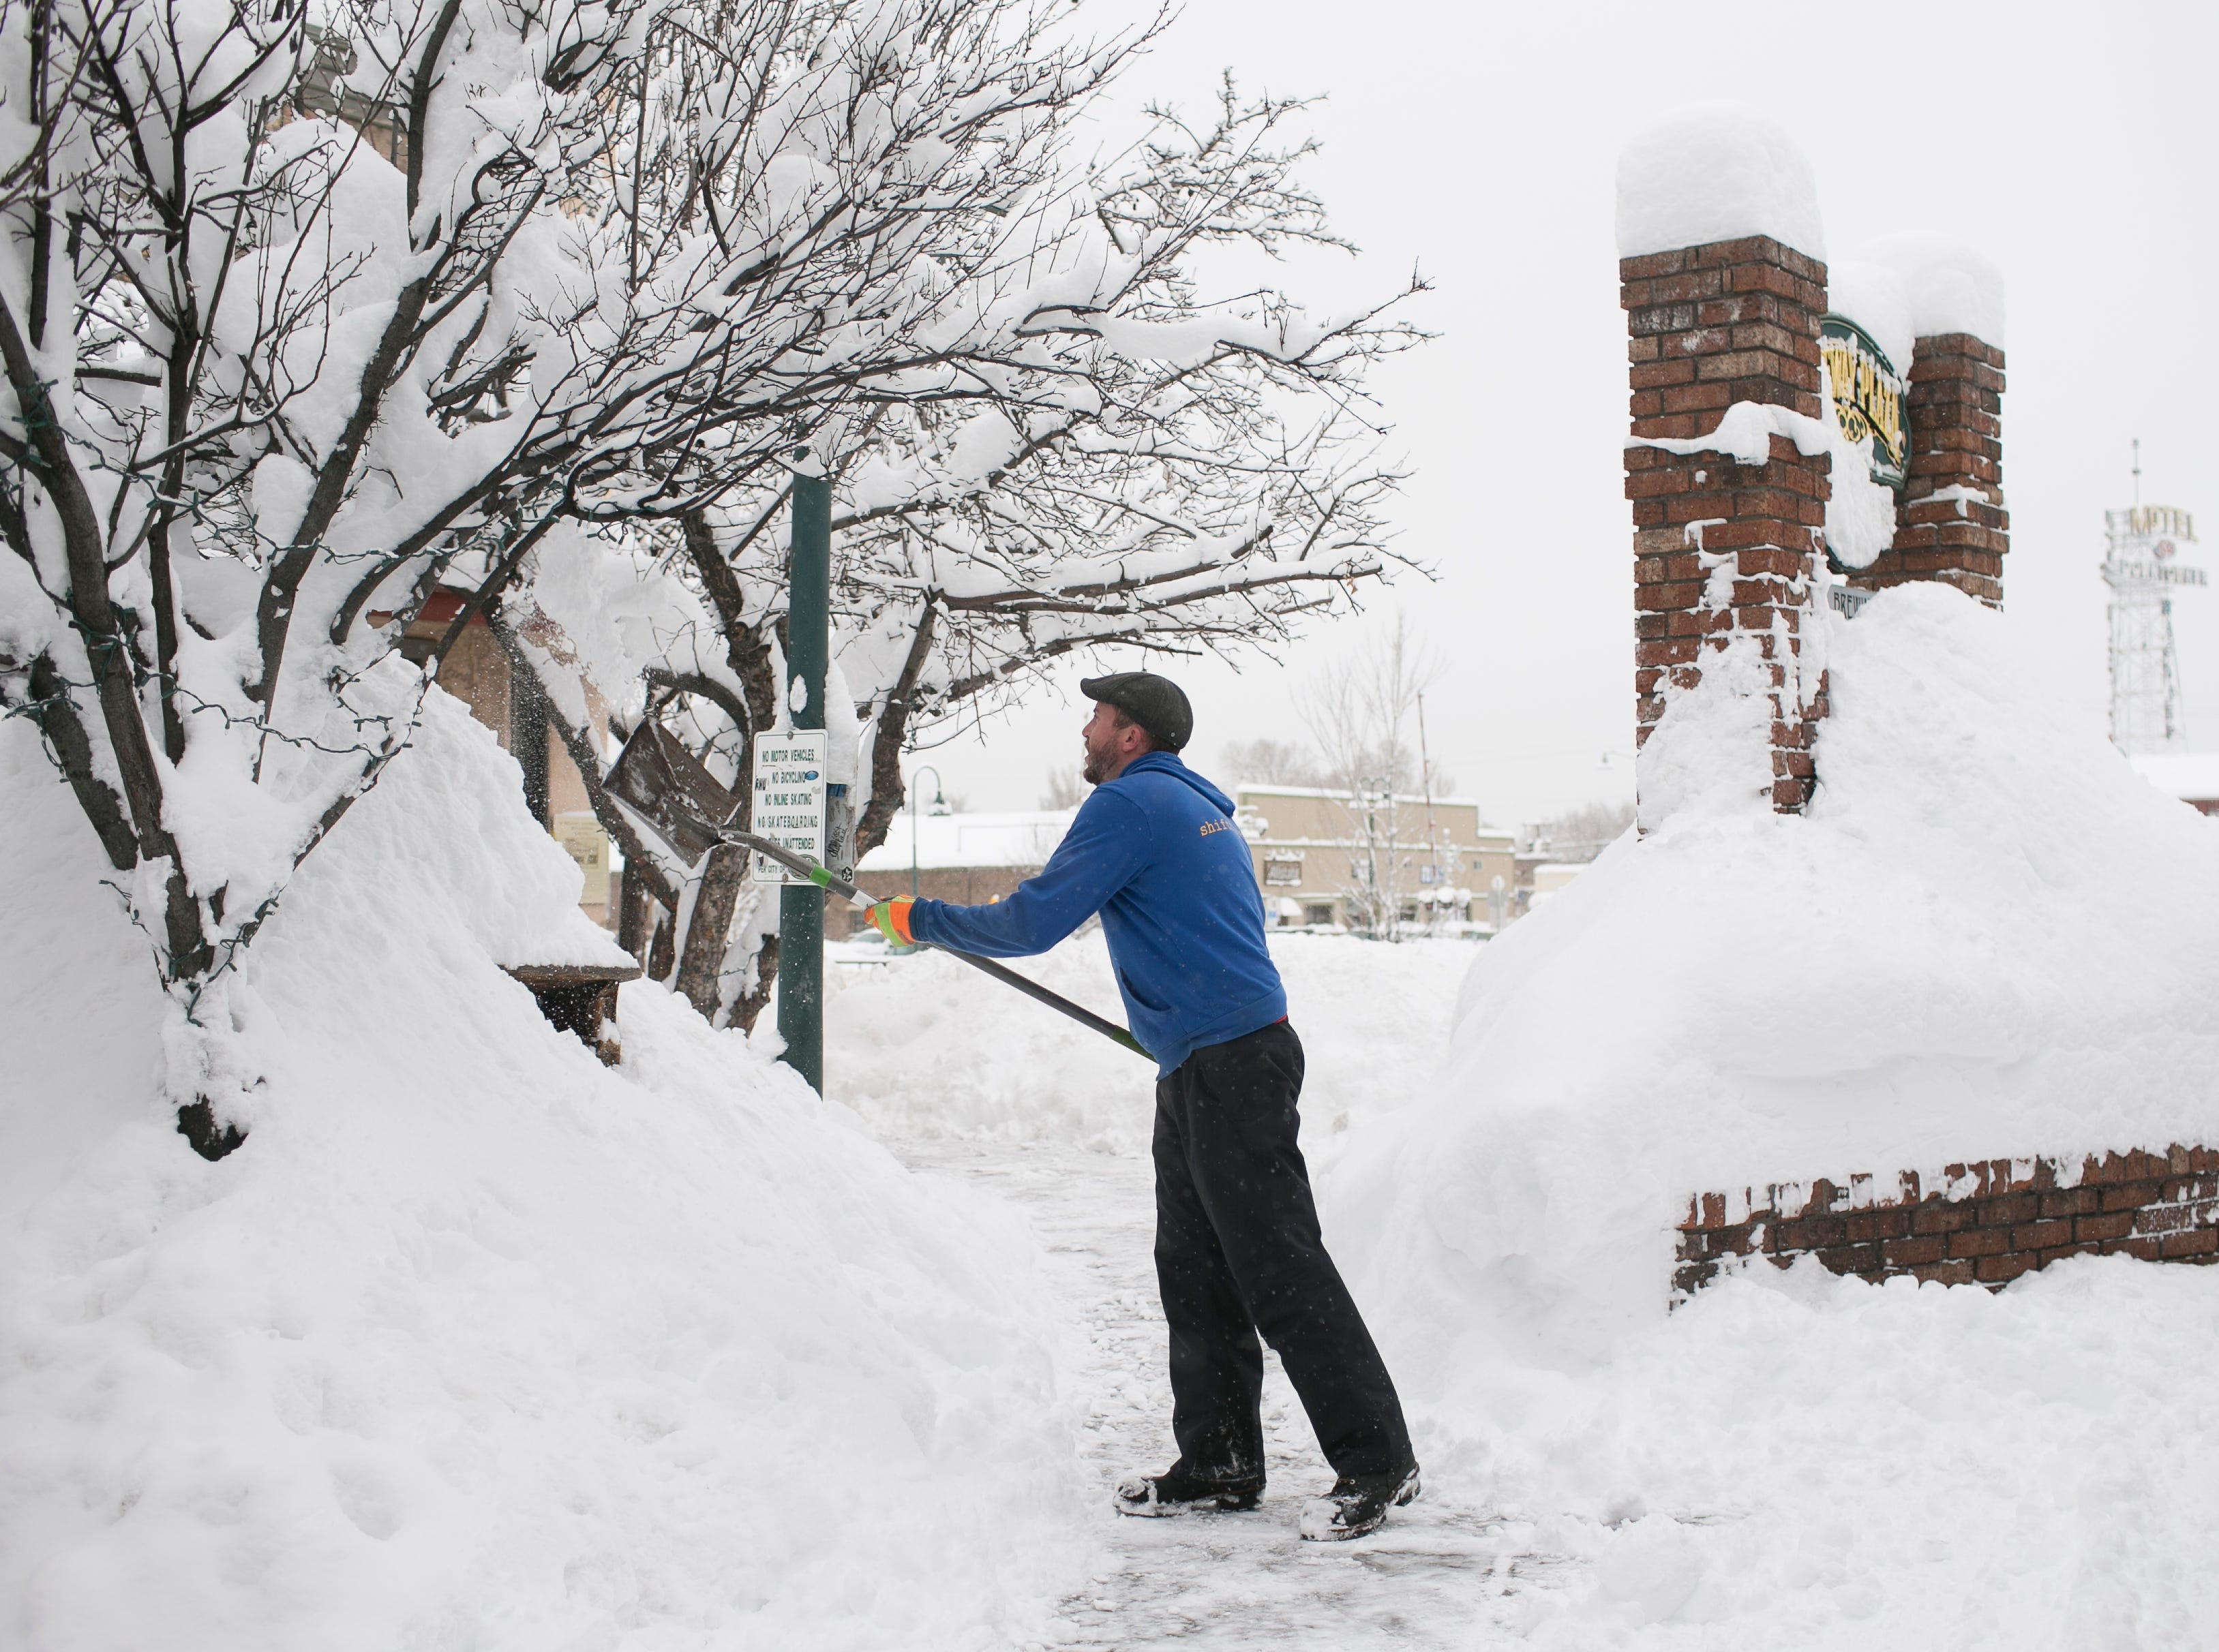 Mitch Kramer shovels snow the morning after a snow storm in Flagstaff on Feb. 22, 2019.